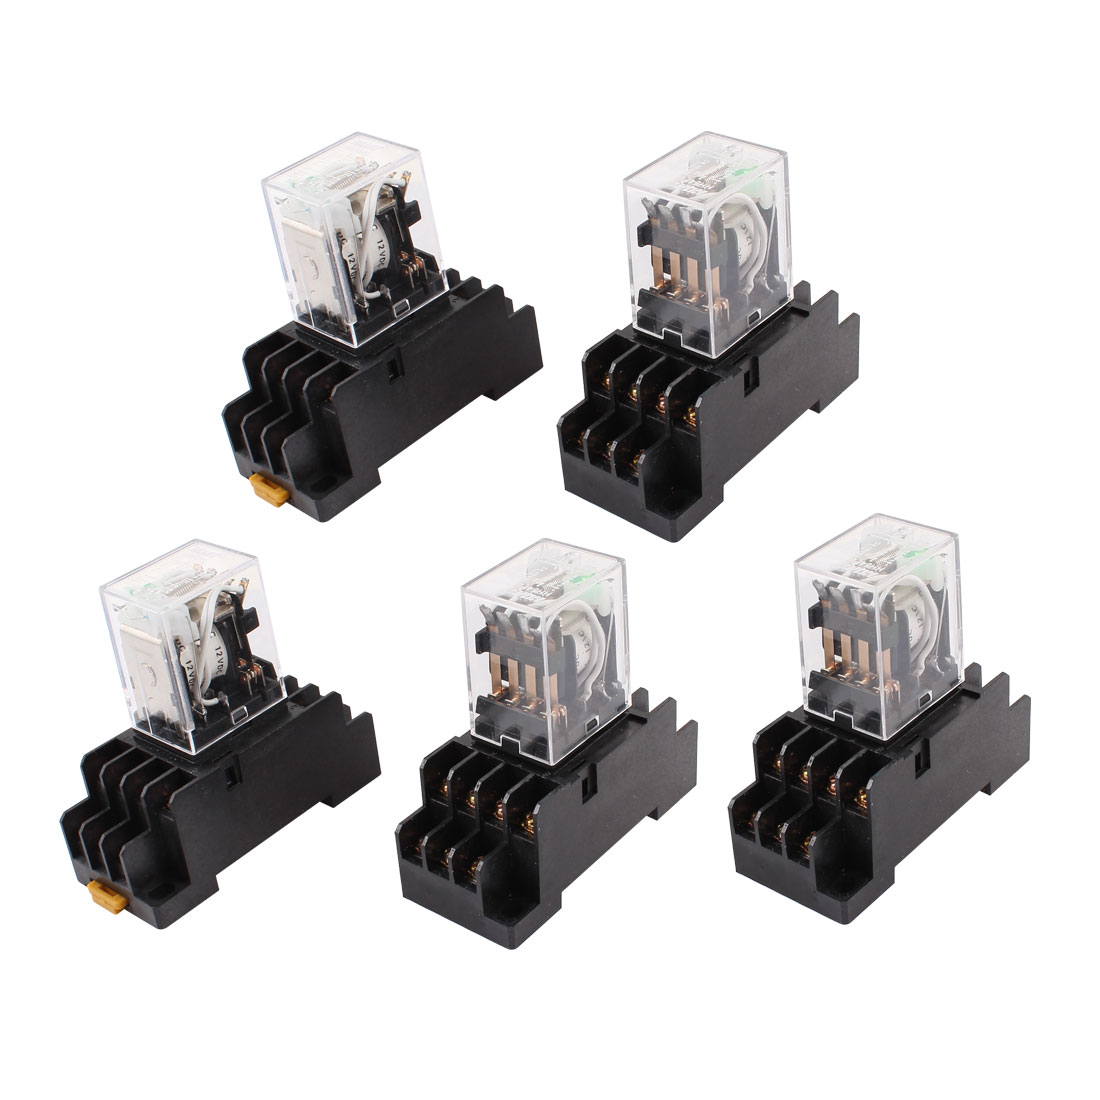 5 Pcs DC 12V Coil 4PDT 14 Pin Green LED General Purpose Power Relay w Socket Base